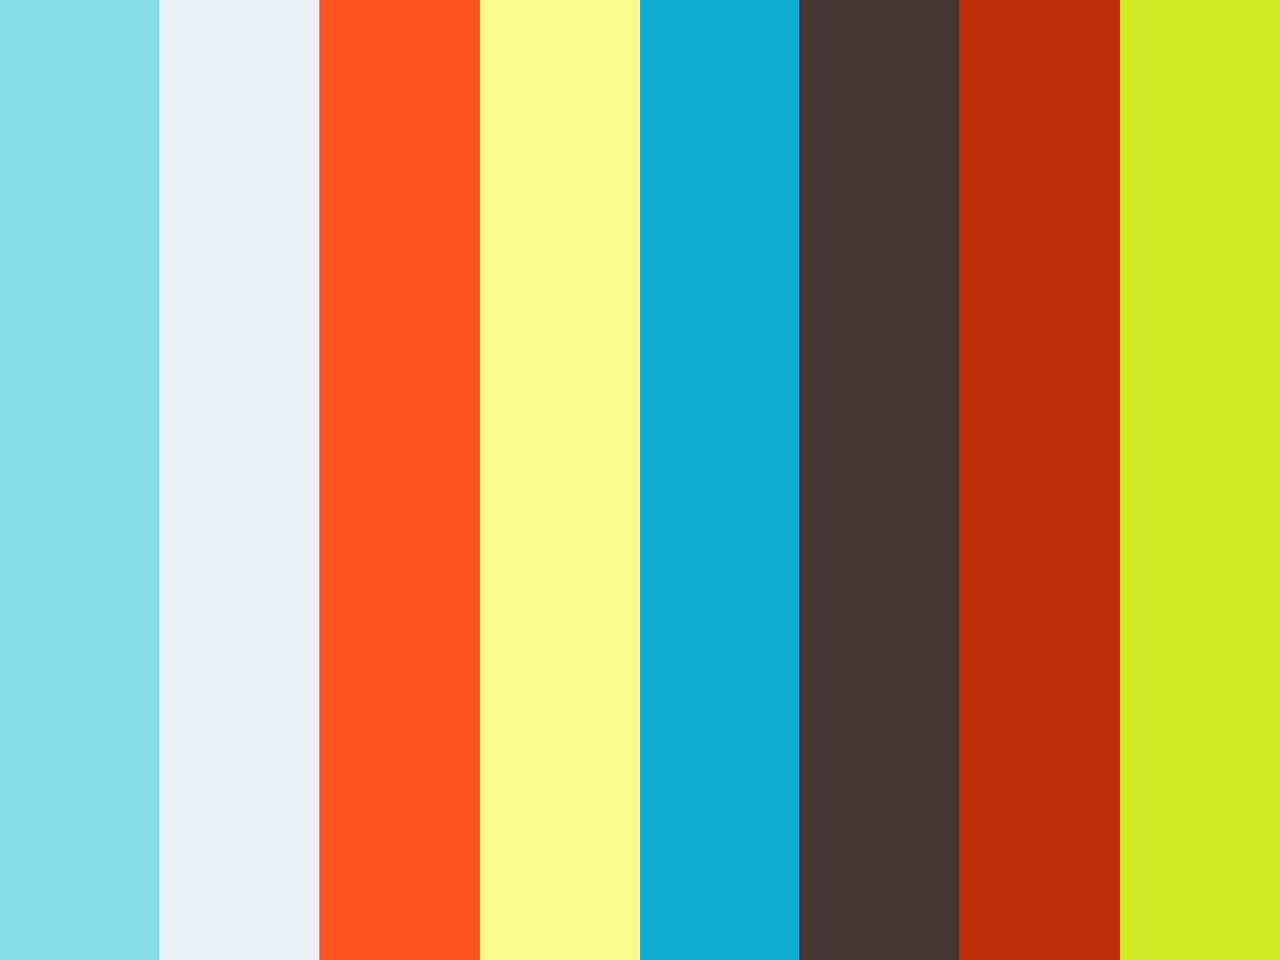 City Commission Meeting - July 21, 2015